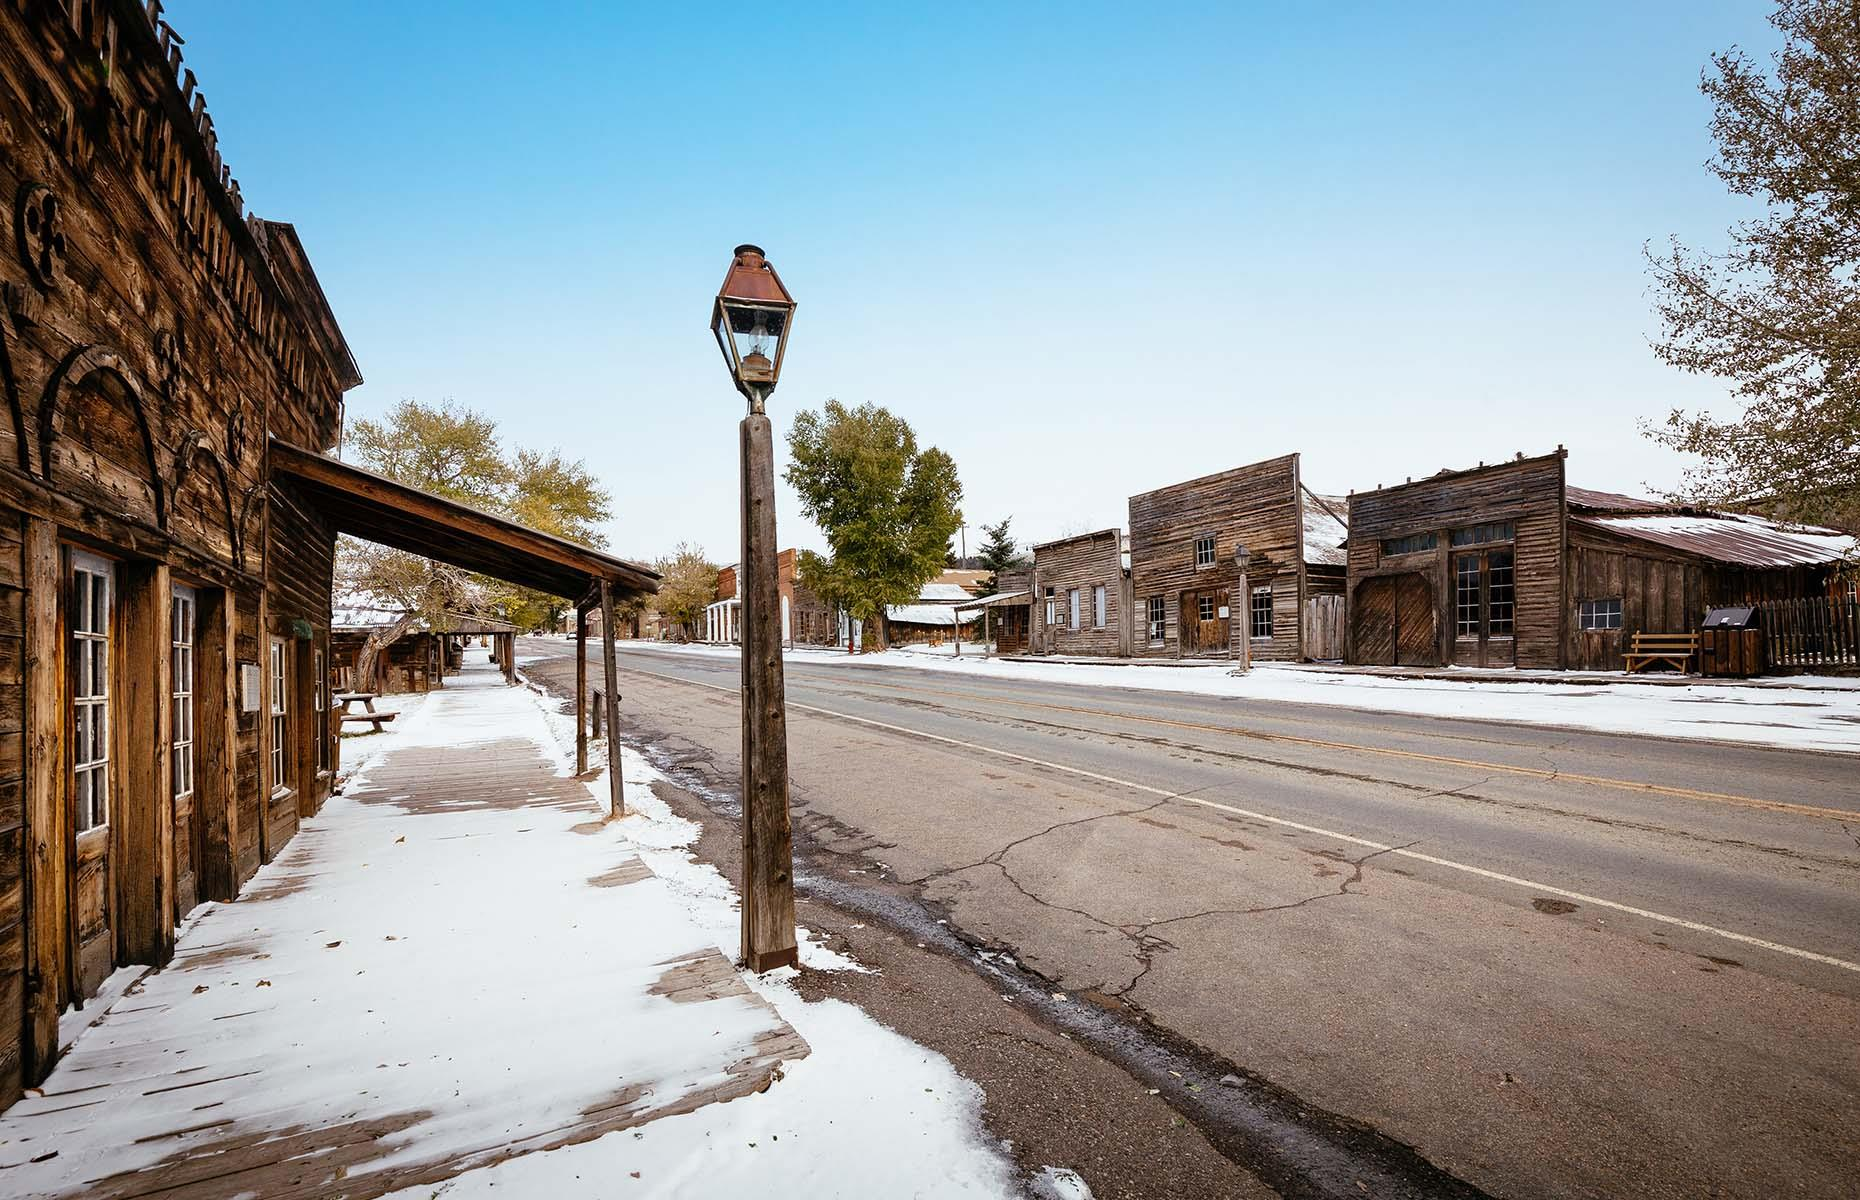 Slide 2 of 46: Best known as the former home of the famous frontierswoman Calamity Jane, this Gold Rush town blossomed in the 1860s as gold was discovered in the nearby Alder Gulch.